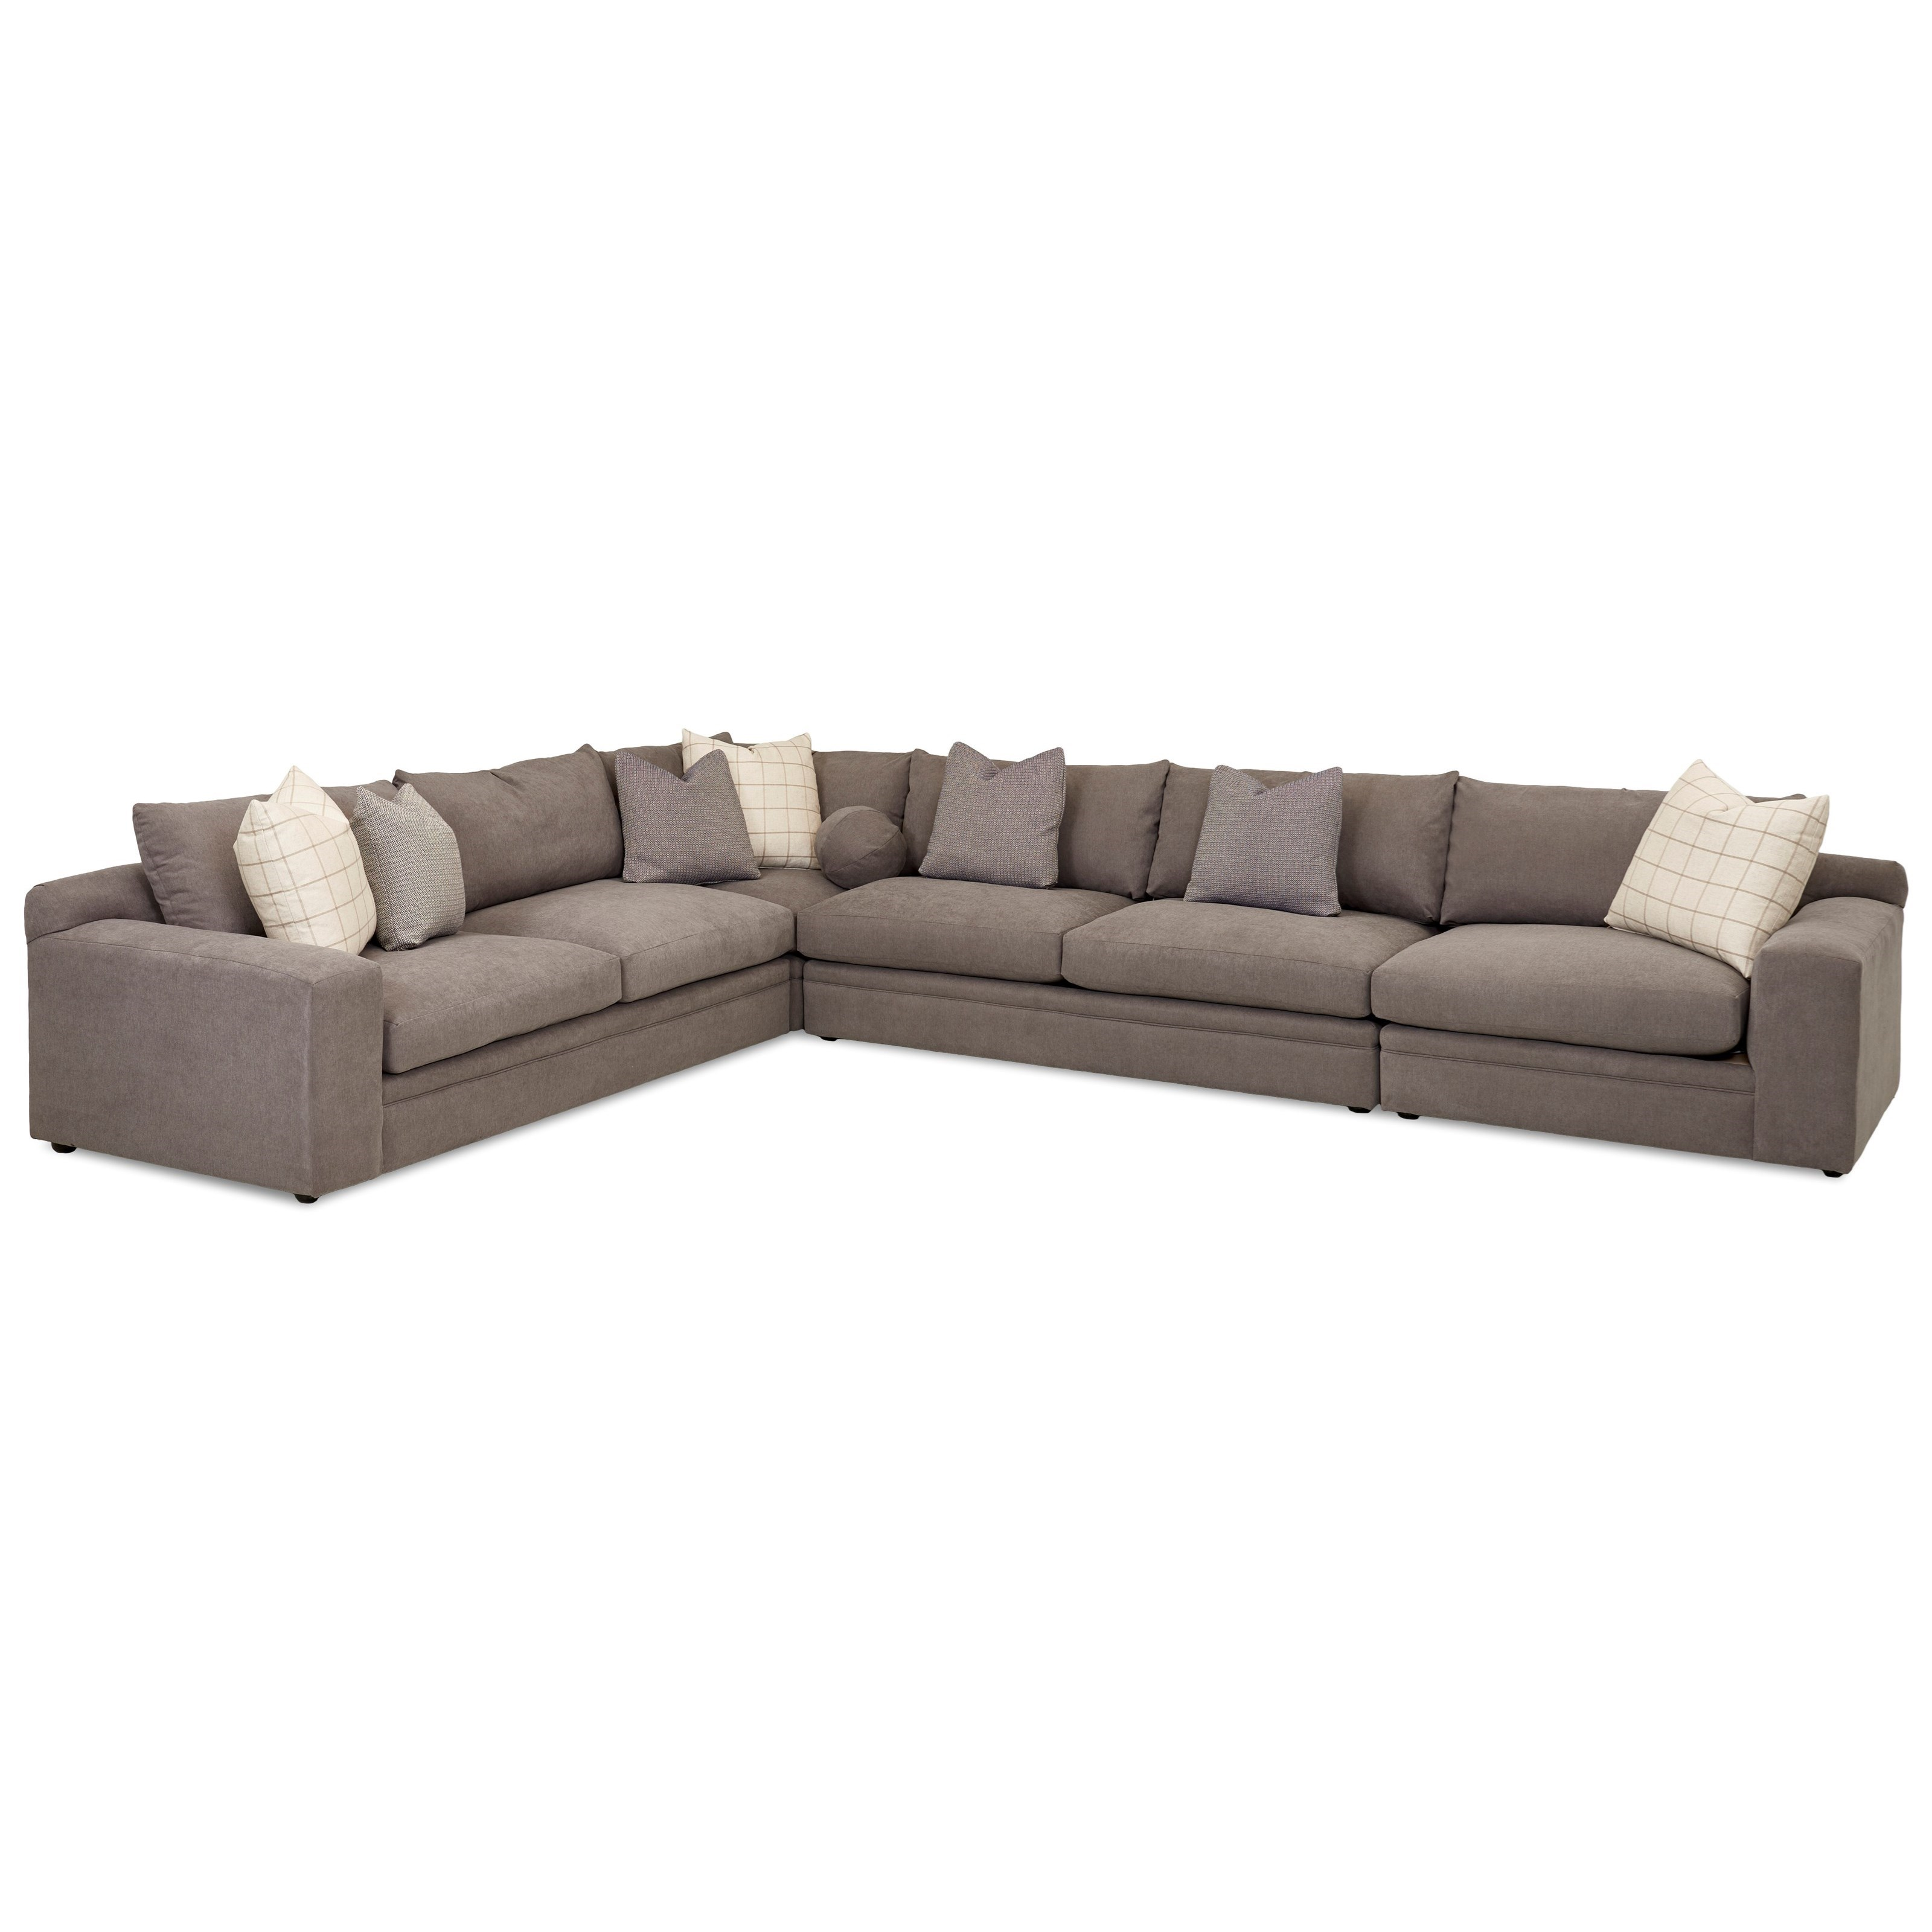 Casa Mesa 4 Pc Sectional Sofa w/ RAF Chair by Klaussner at Northeast Factory Direct